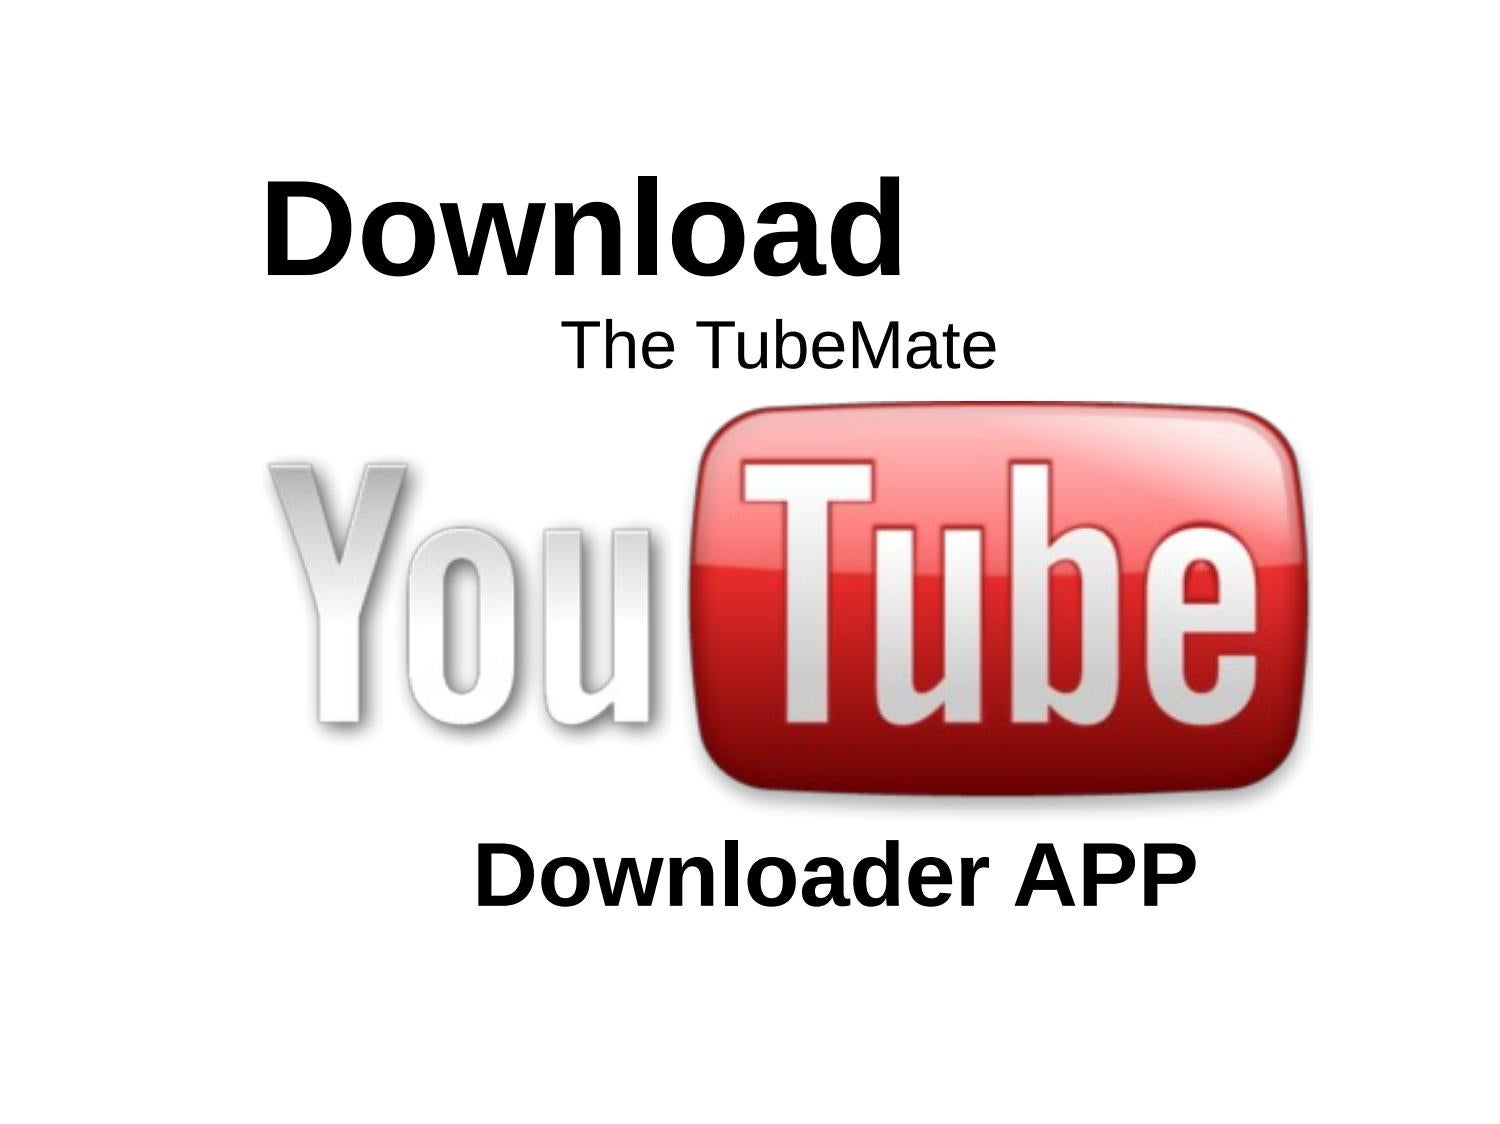 Download TubeMate YouTube Downloader App by Trenton G